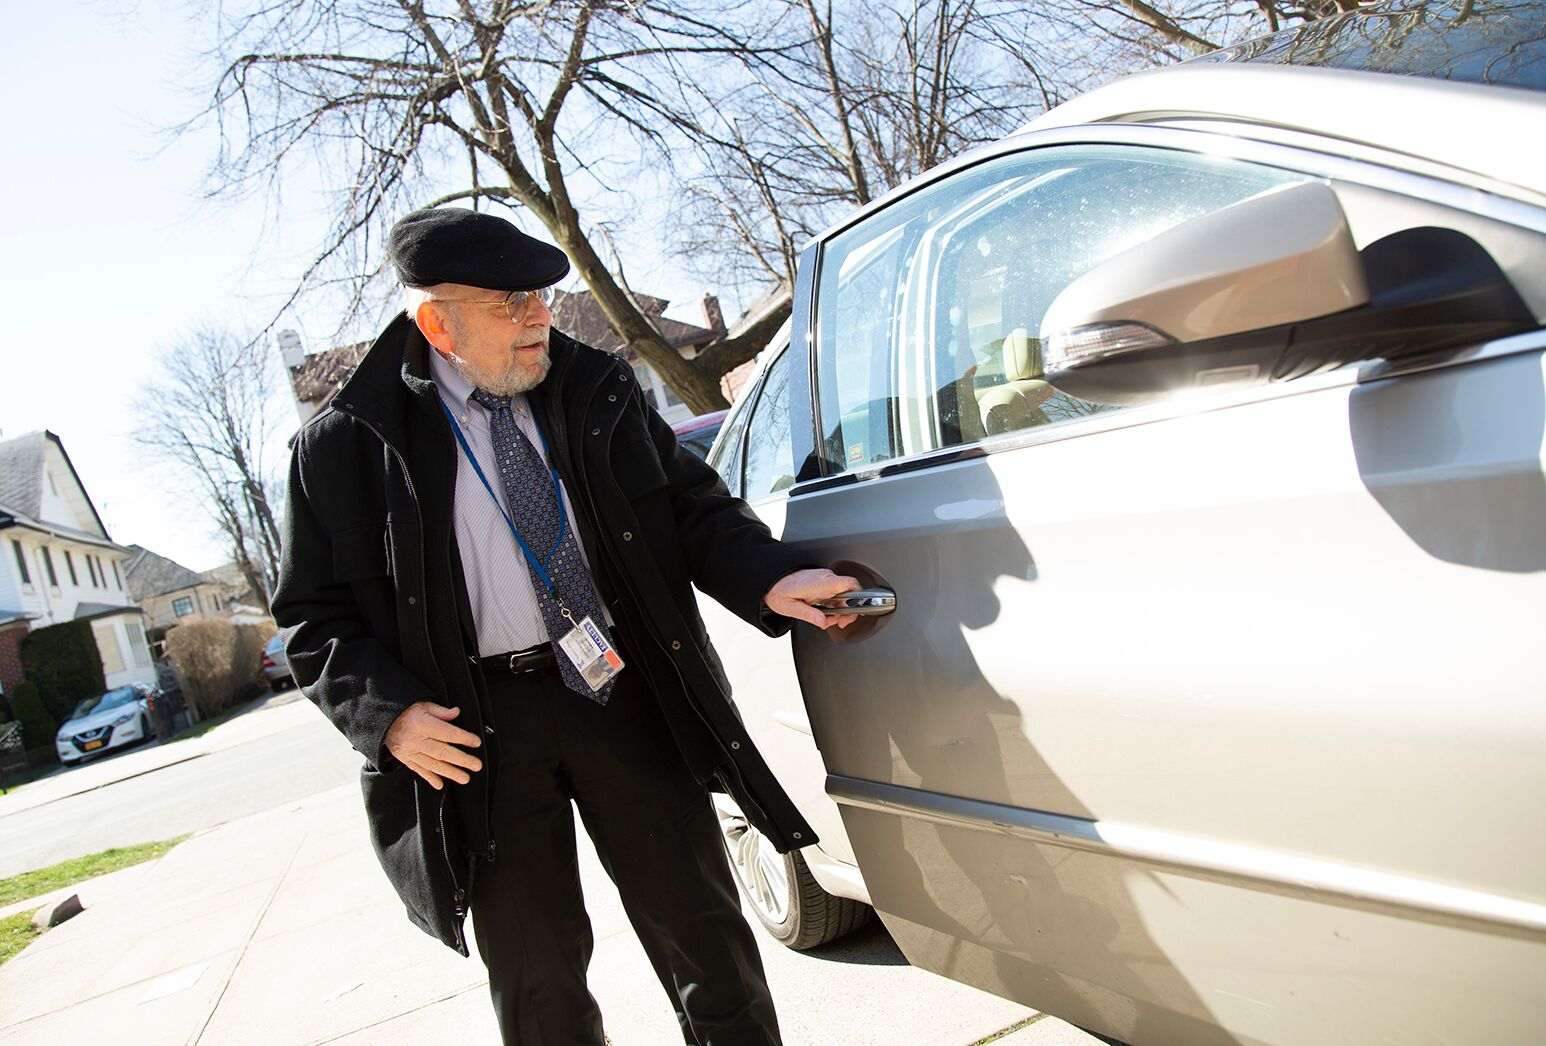 Man in his 70s who had double knee replacement surgery opening a car door